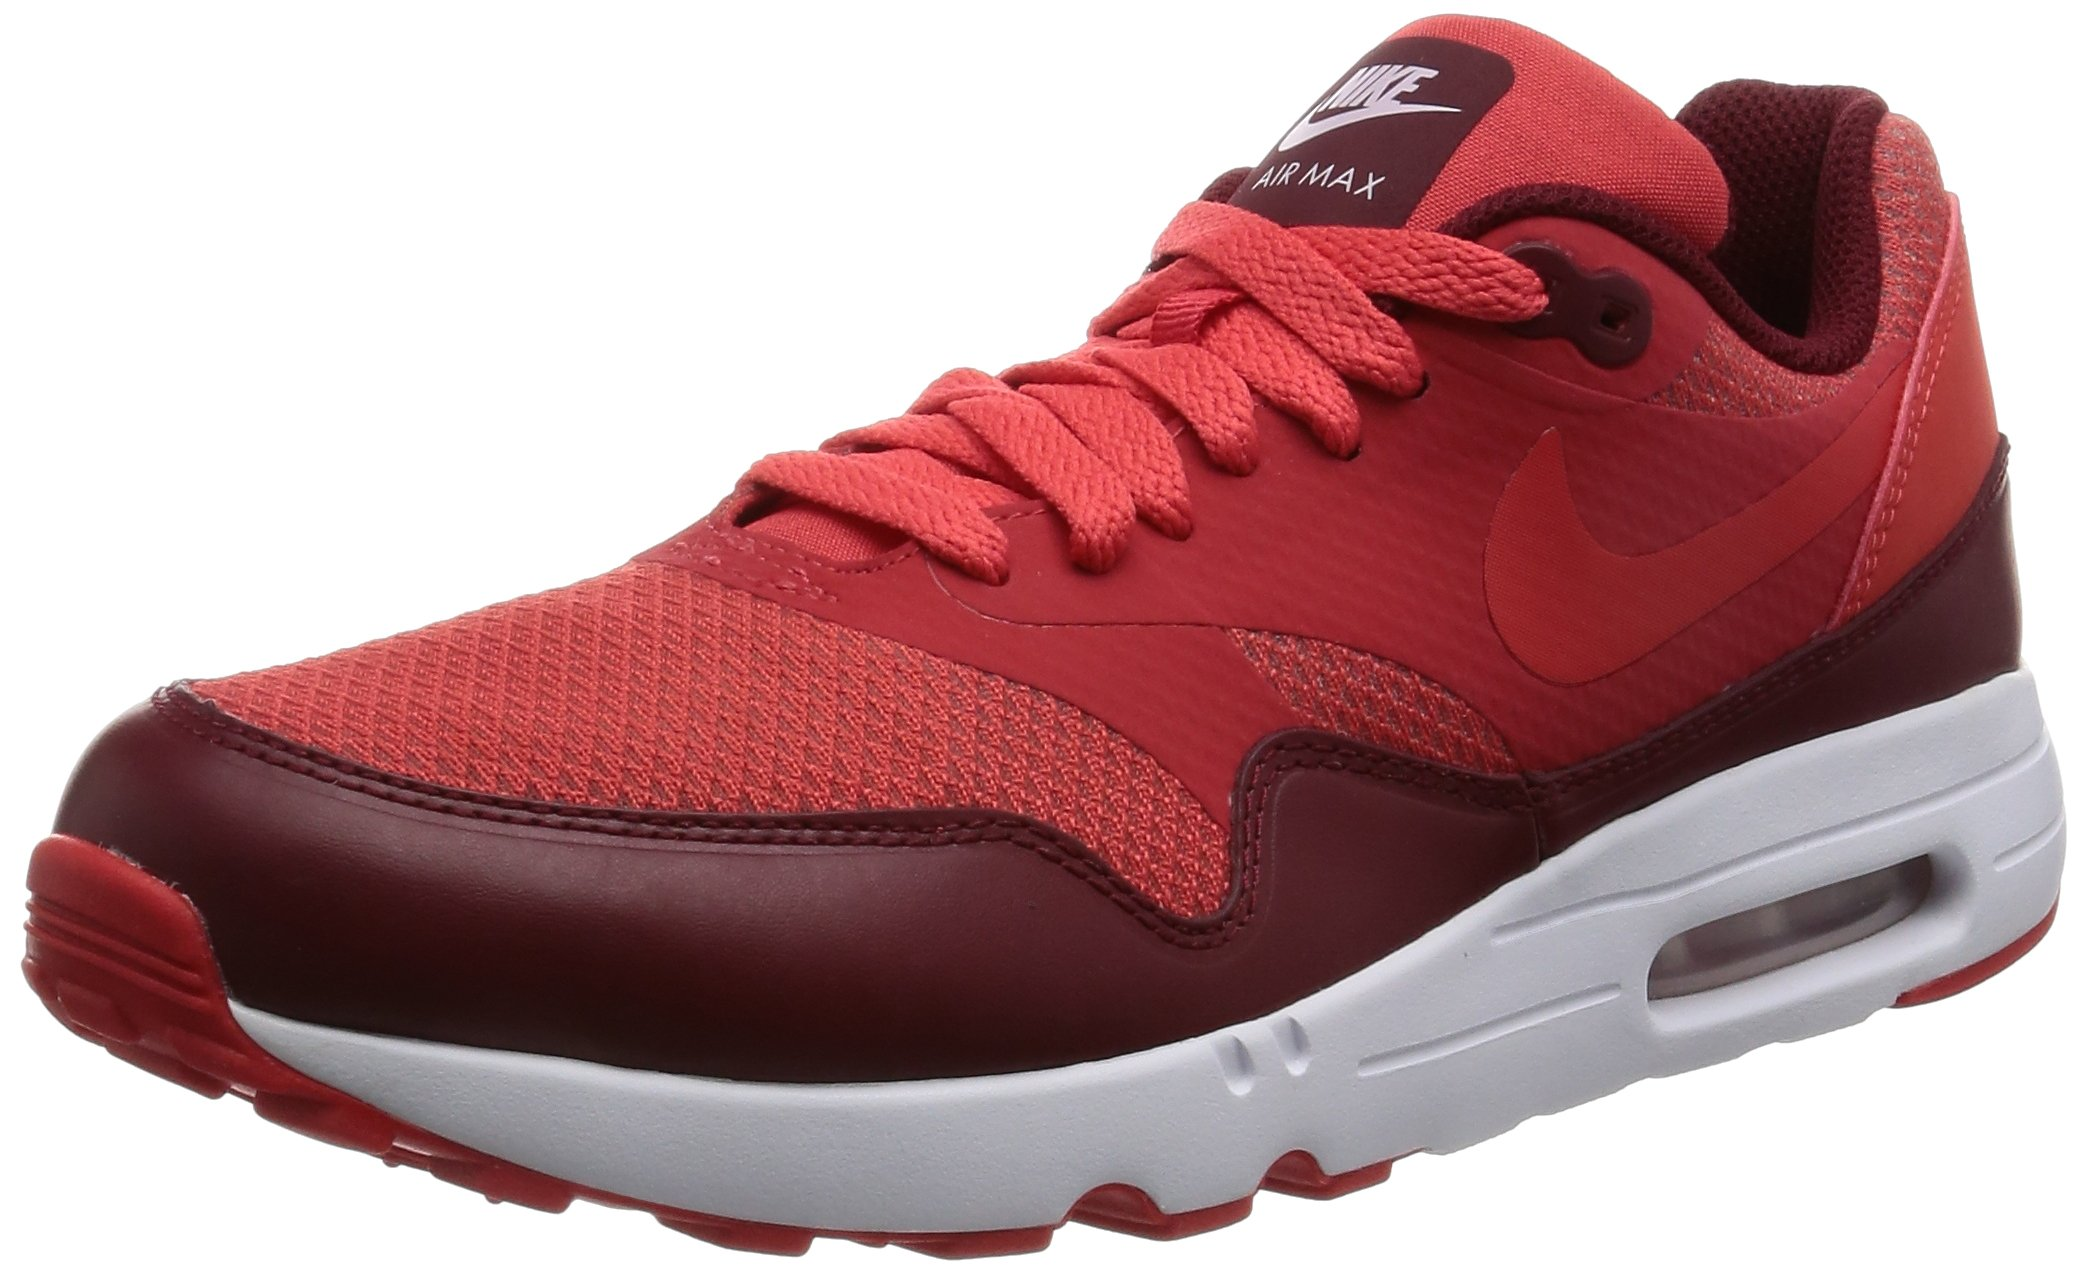 3cf0b71929a6 Galleon - NIKE Men s Air Max Ultra 2.0 Essential Track Red Track Red Team Red  Running Shoe 11.5 Men US